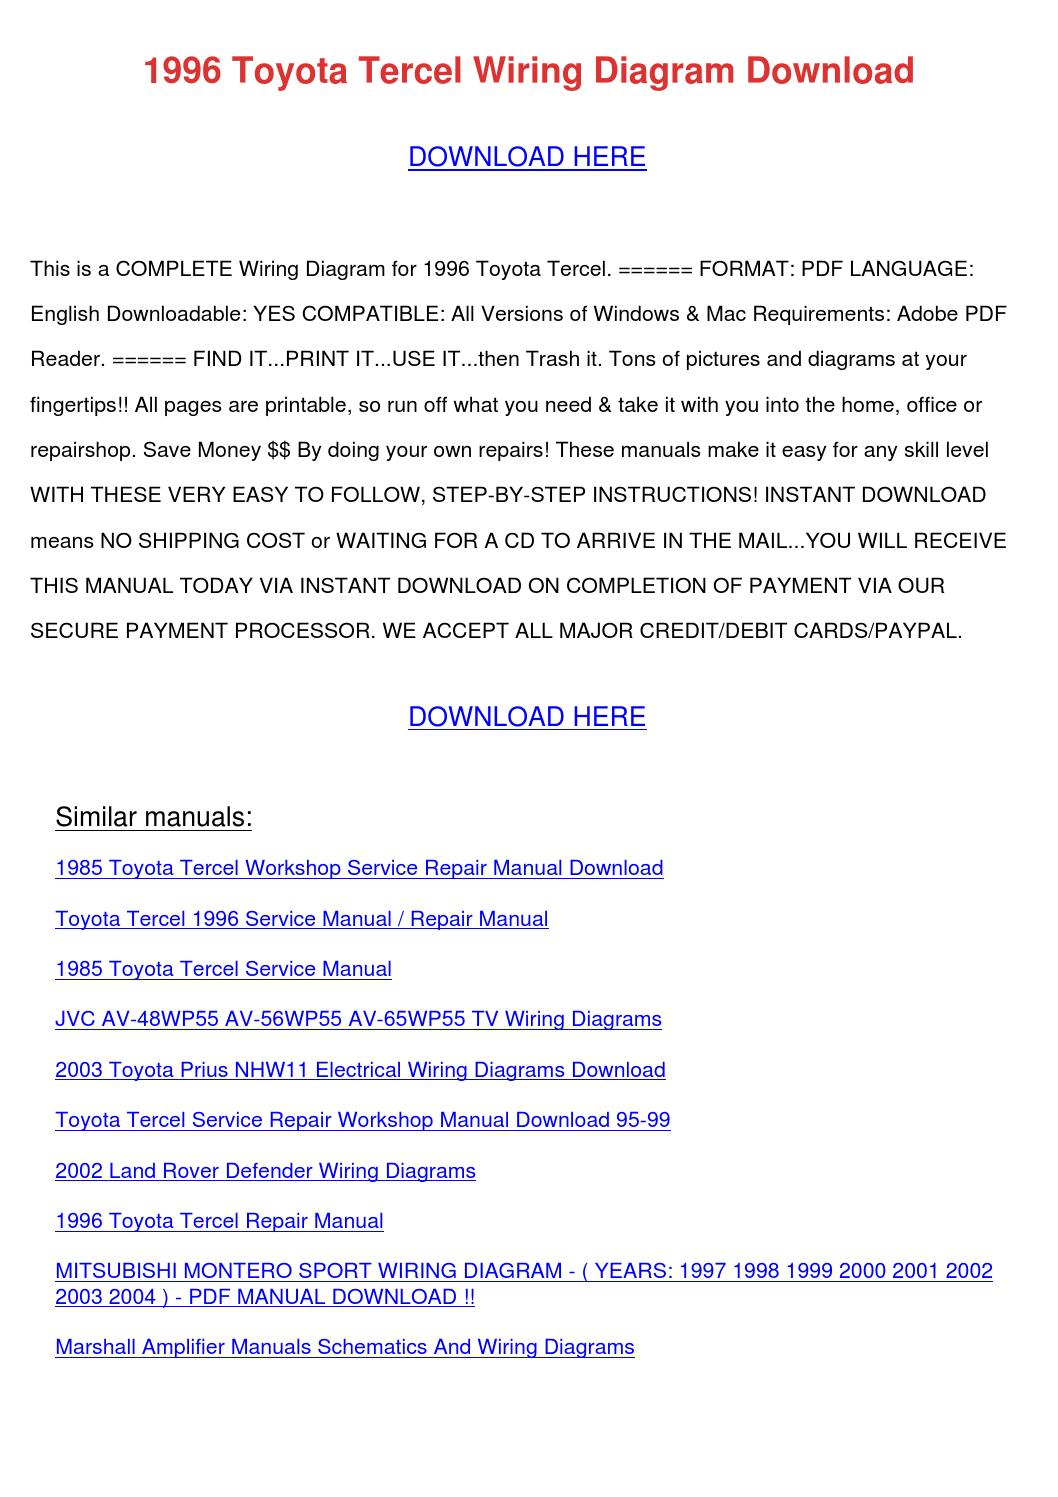 hight resolution of 1996 toyota tercel wiring diagram download by marymcclung issuu